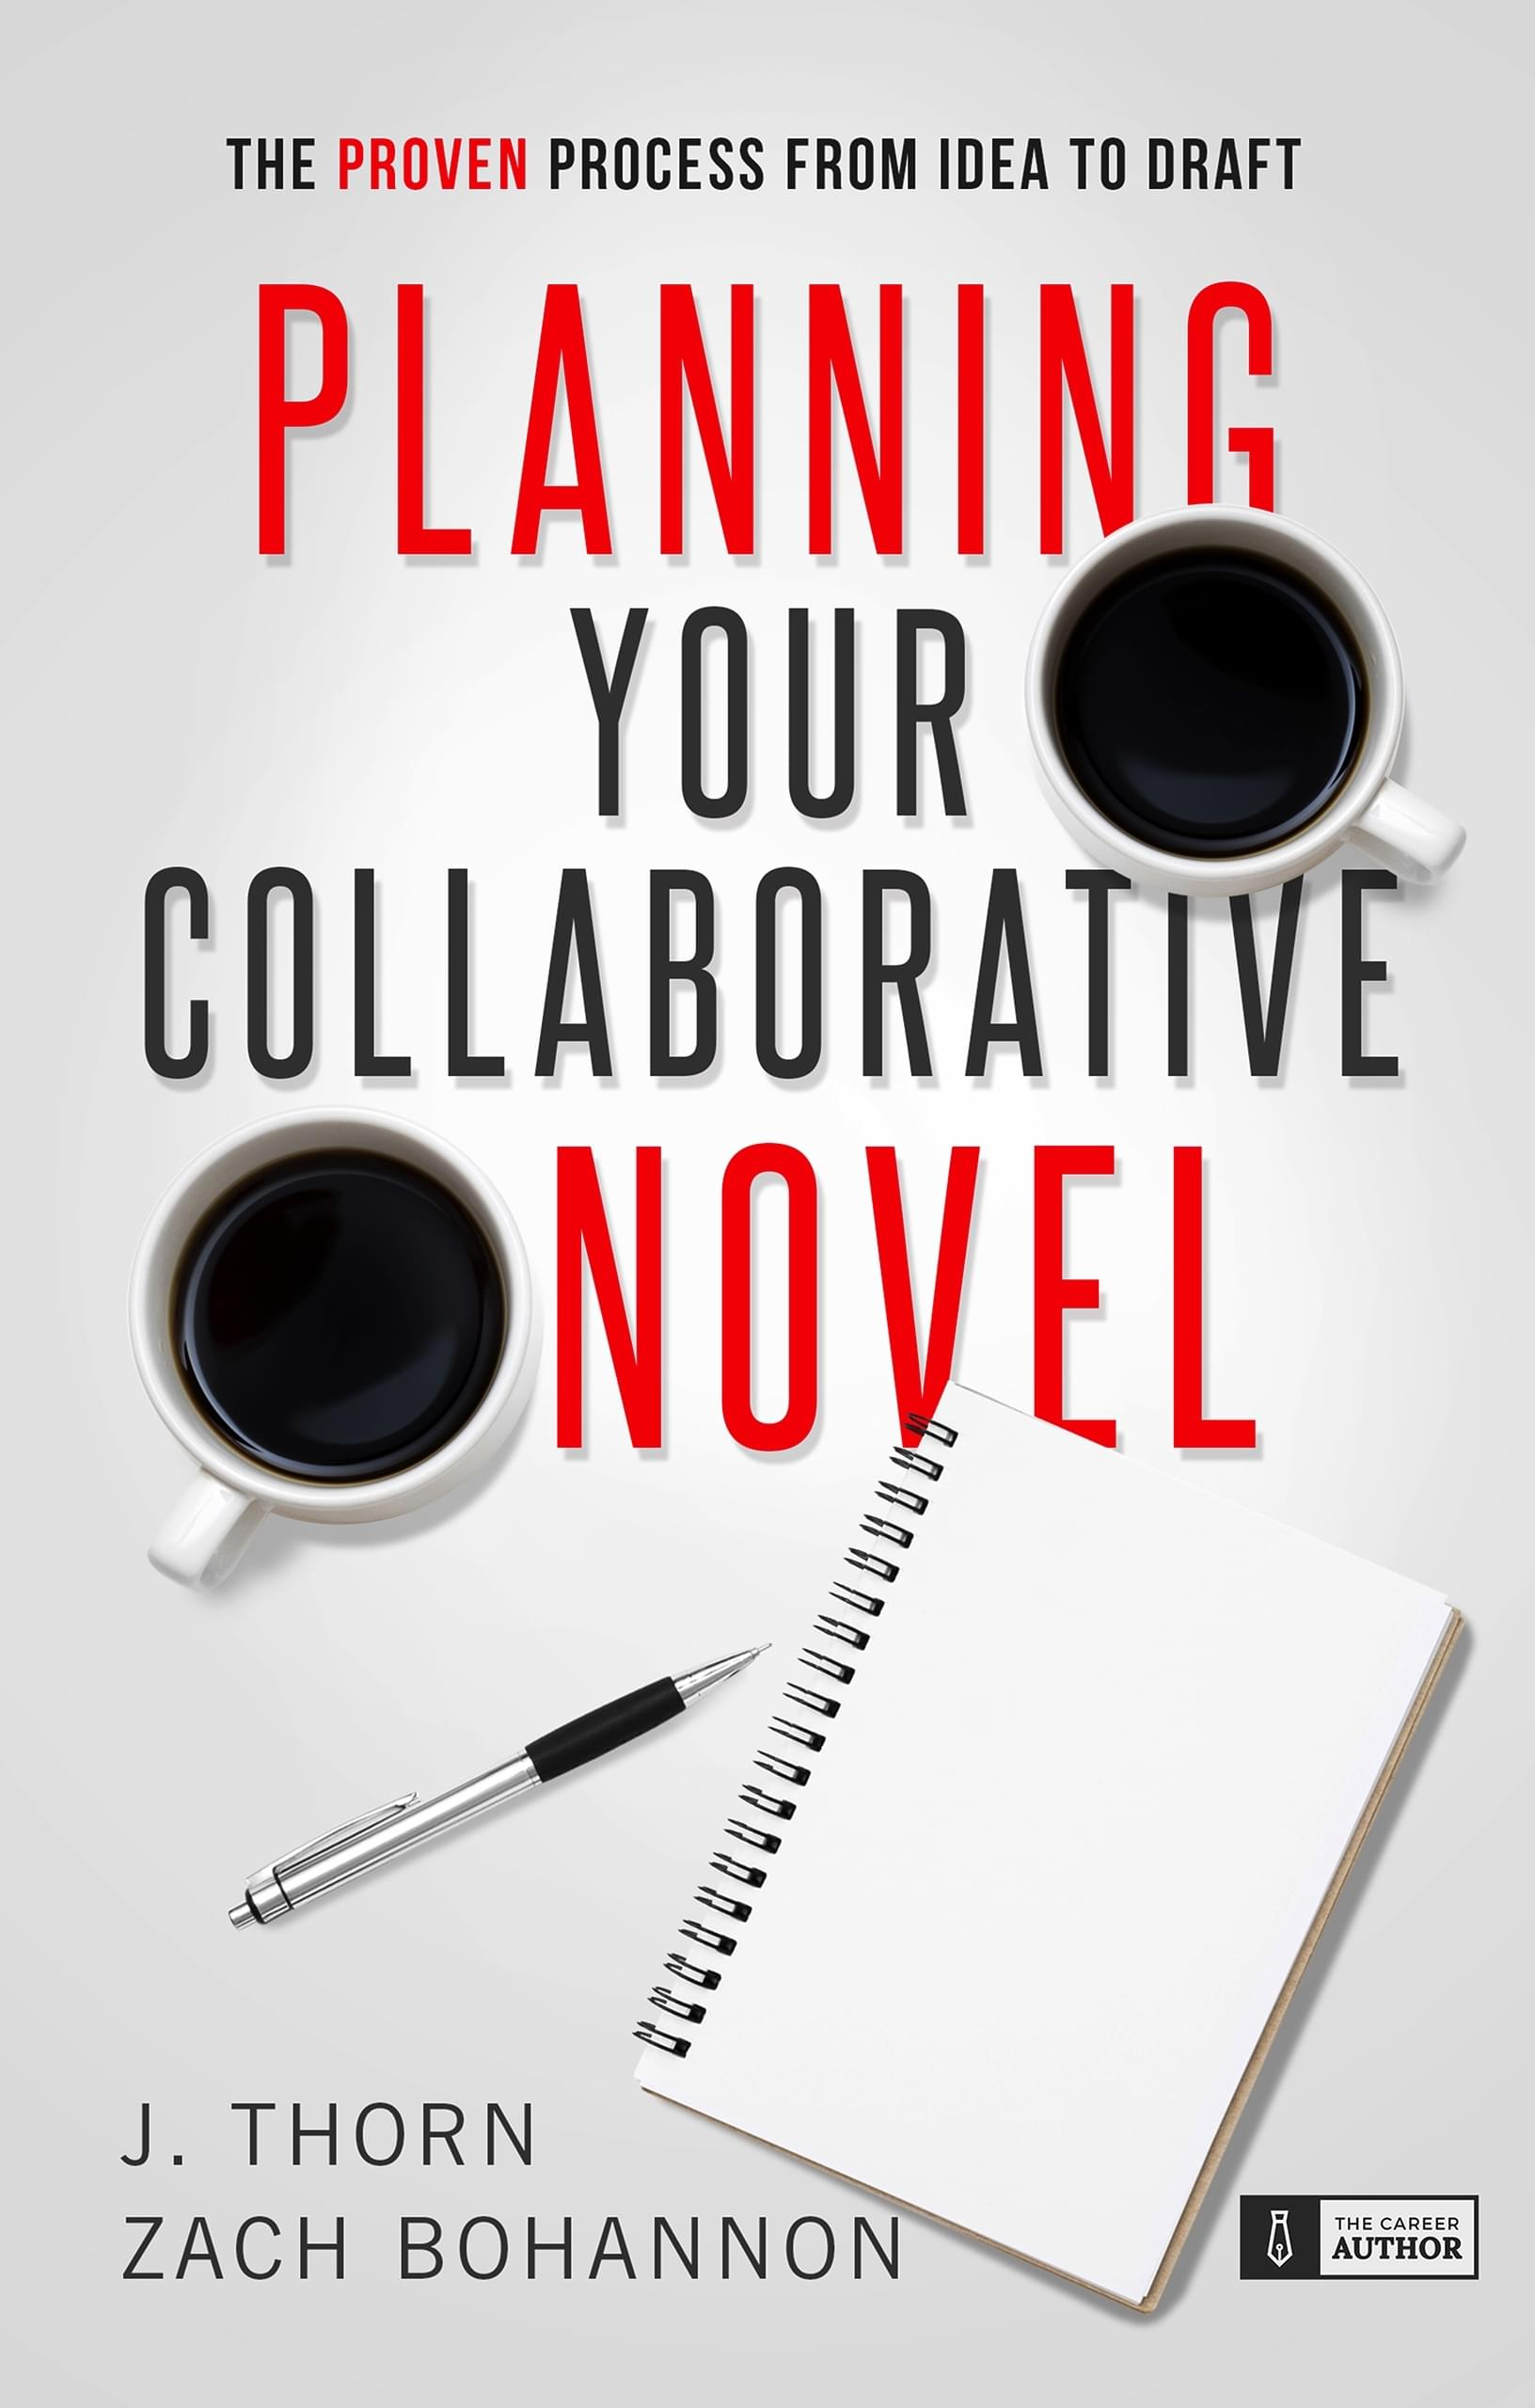 Planning Your Collaborative Novel by J. Thorn